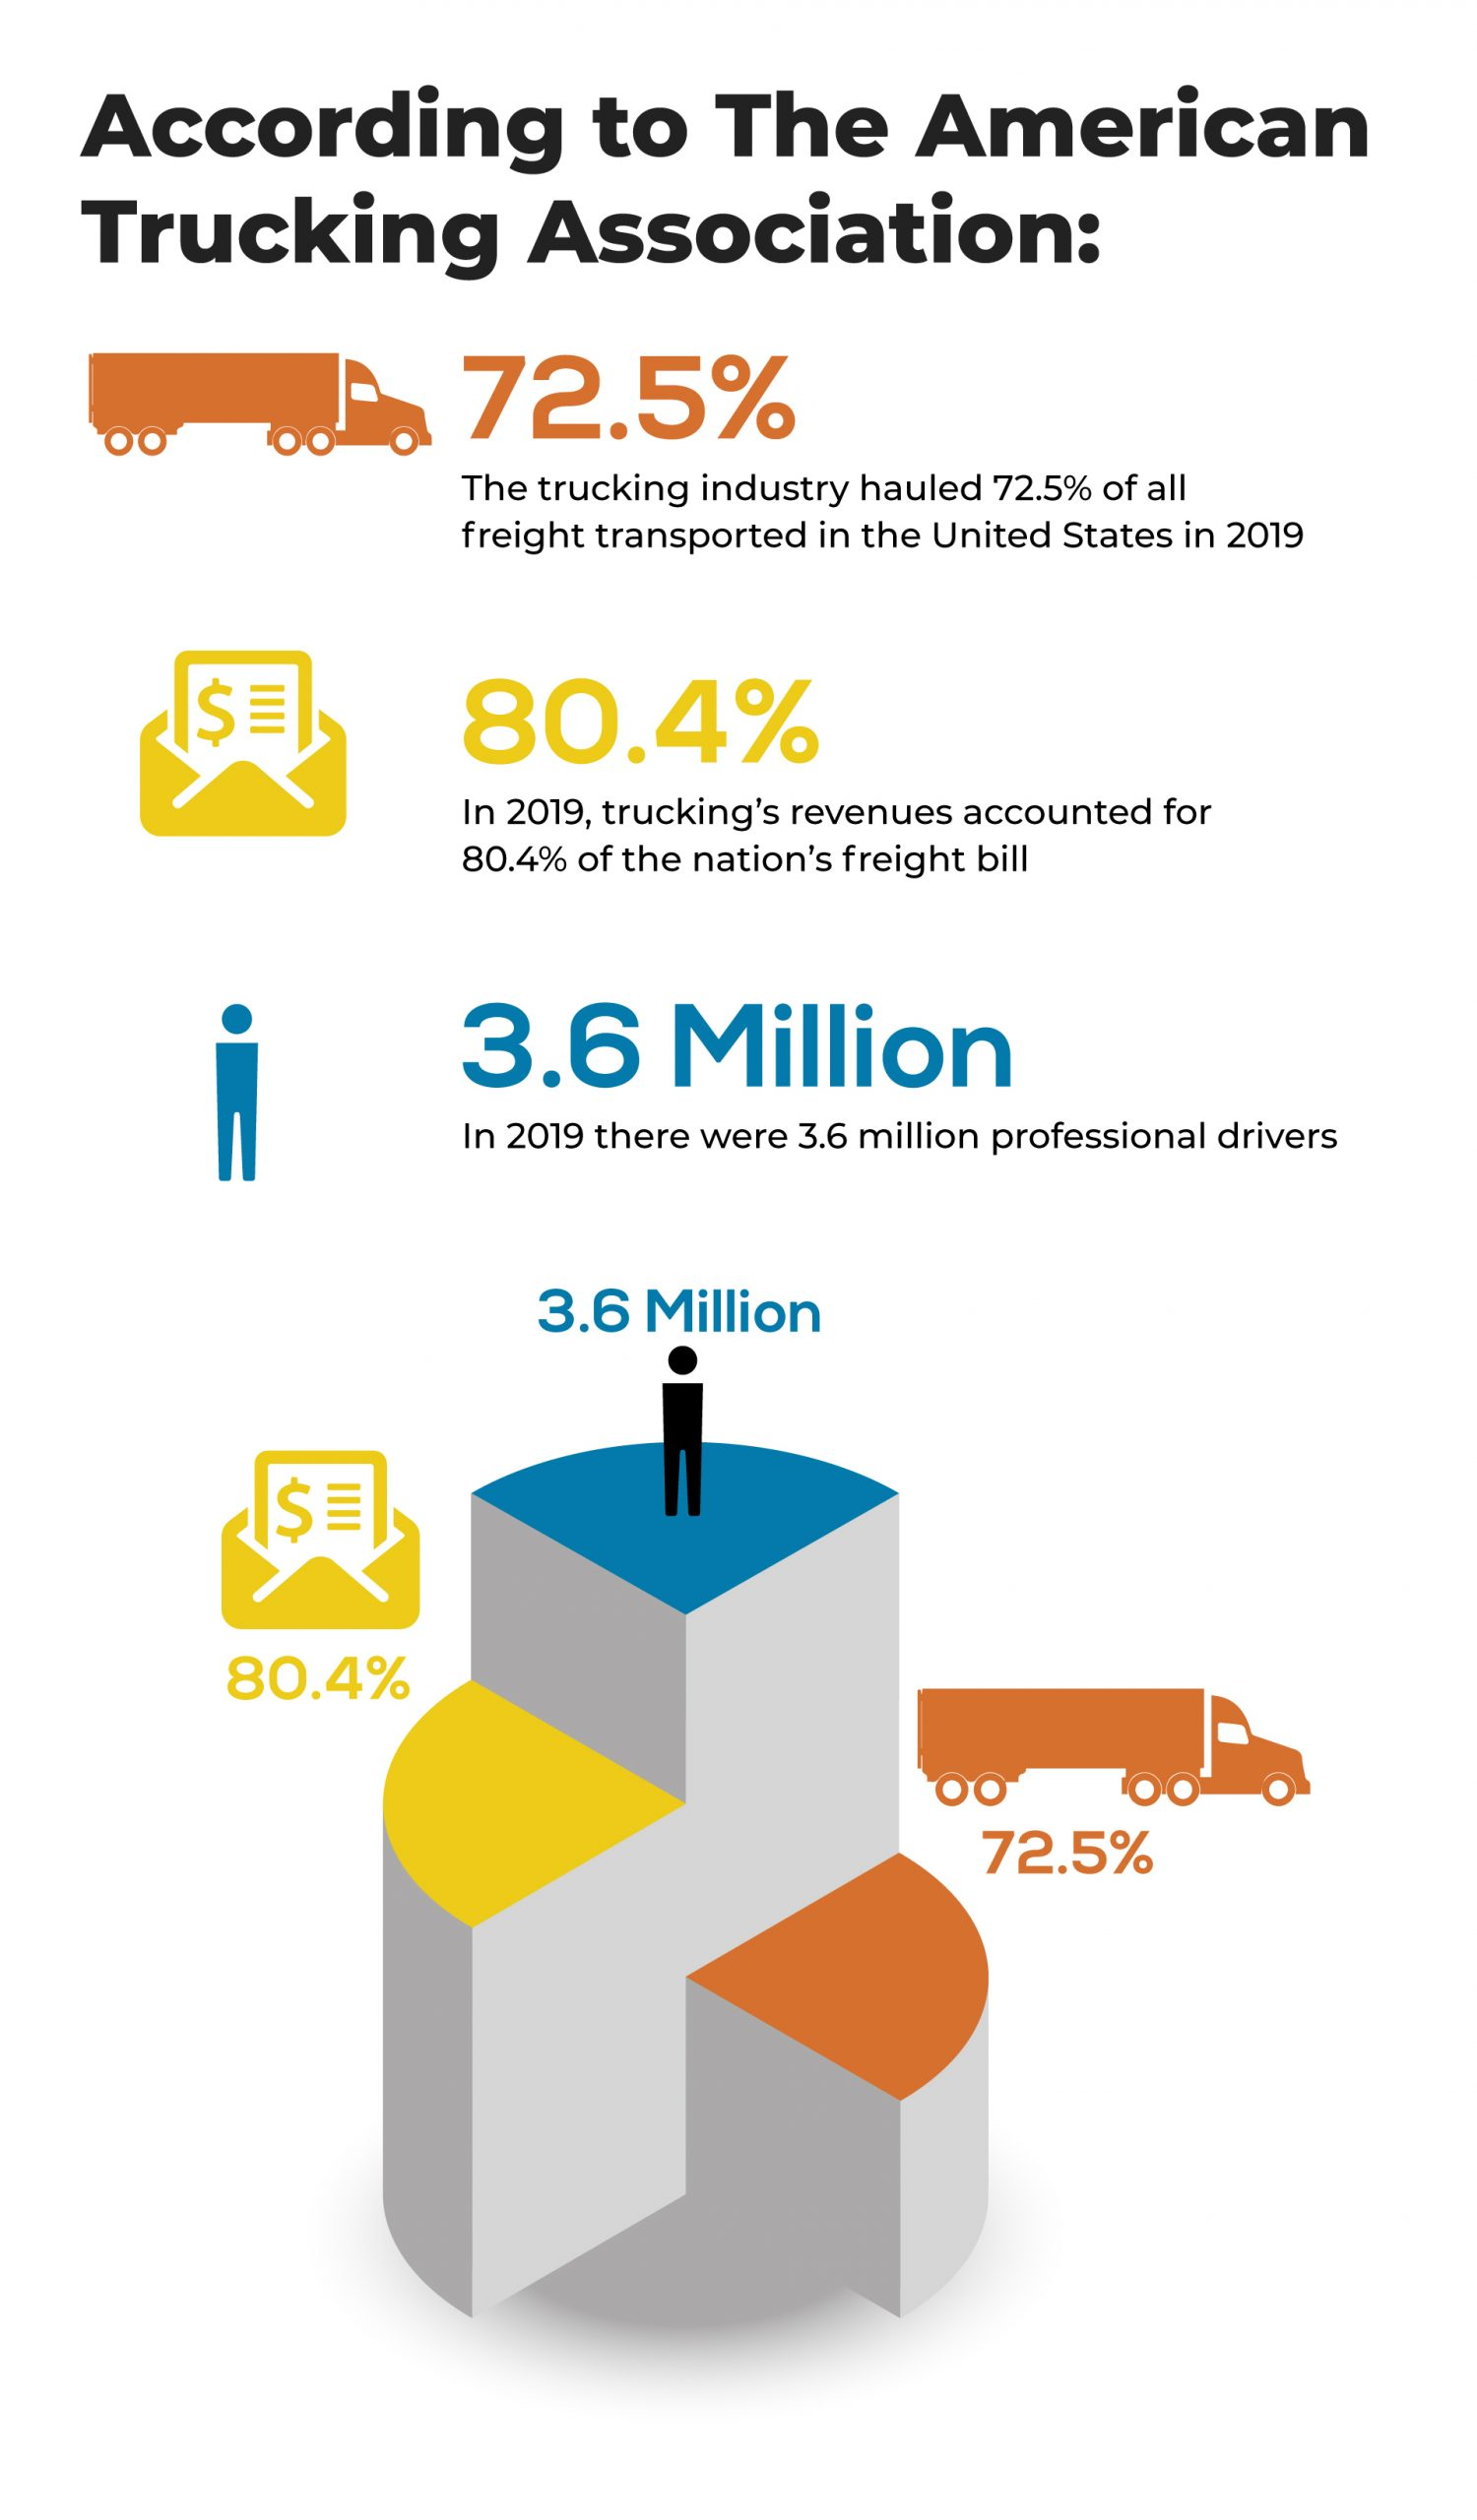 American Trucking Association Infographic